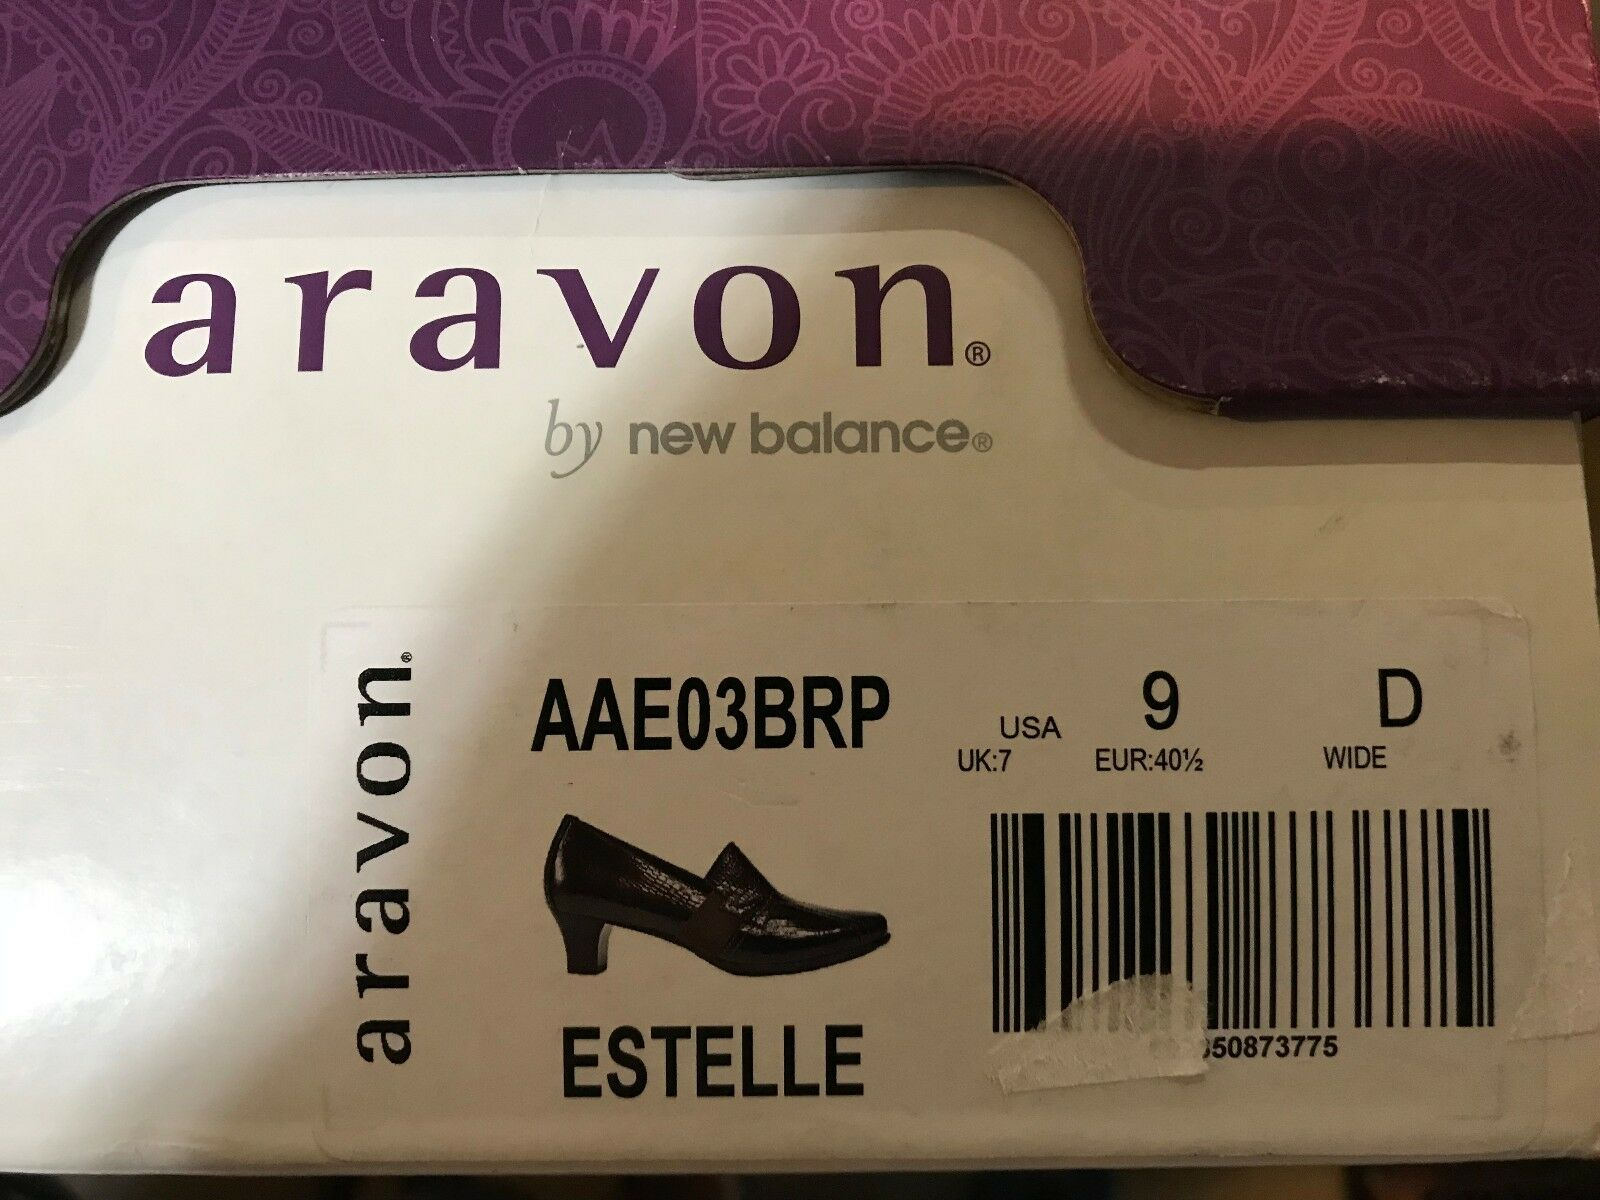 ARAVON, ESTELLE, Damenschuhe, BROWN LIZARD, LIZARD, LIZARD, US Größe 9 D WIDE NEW/DISPLAY aadc4e